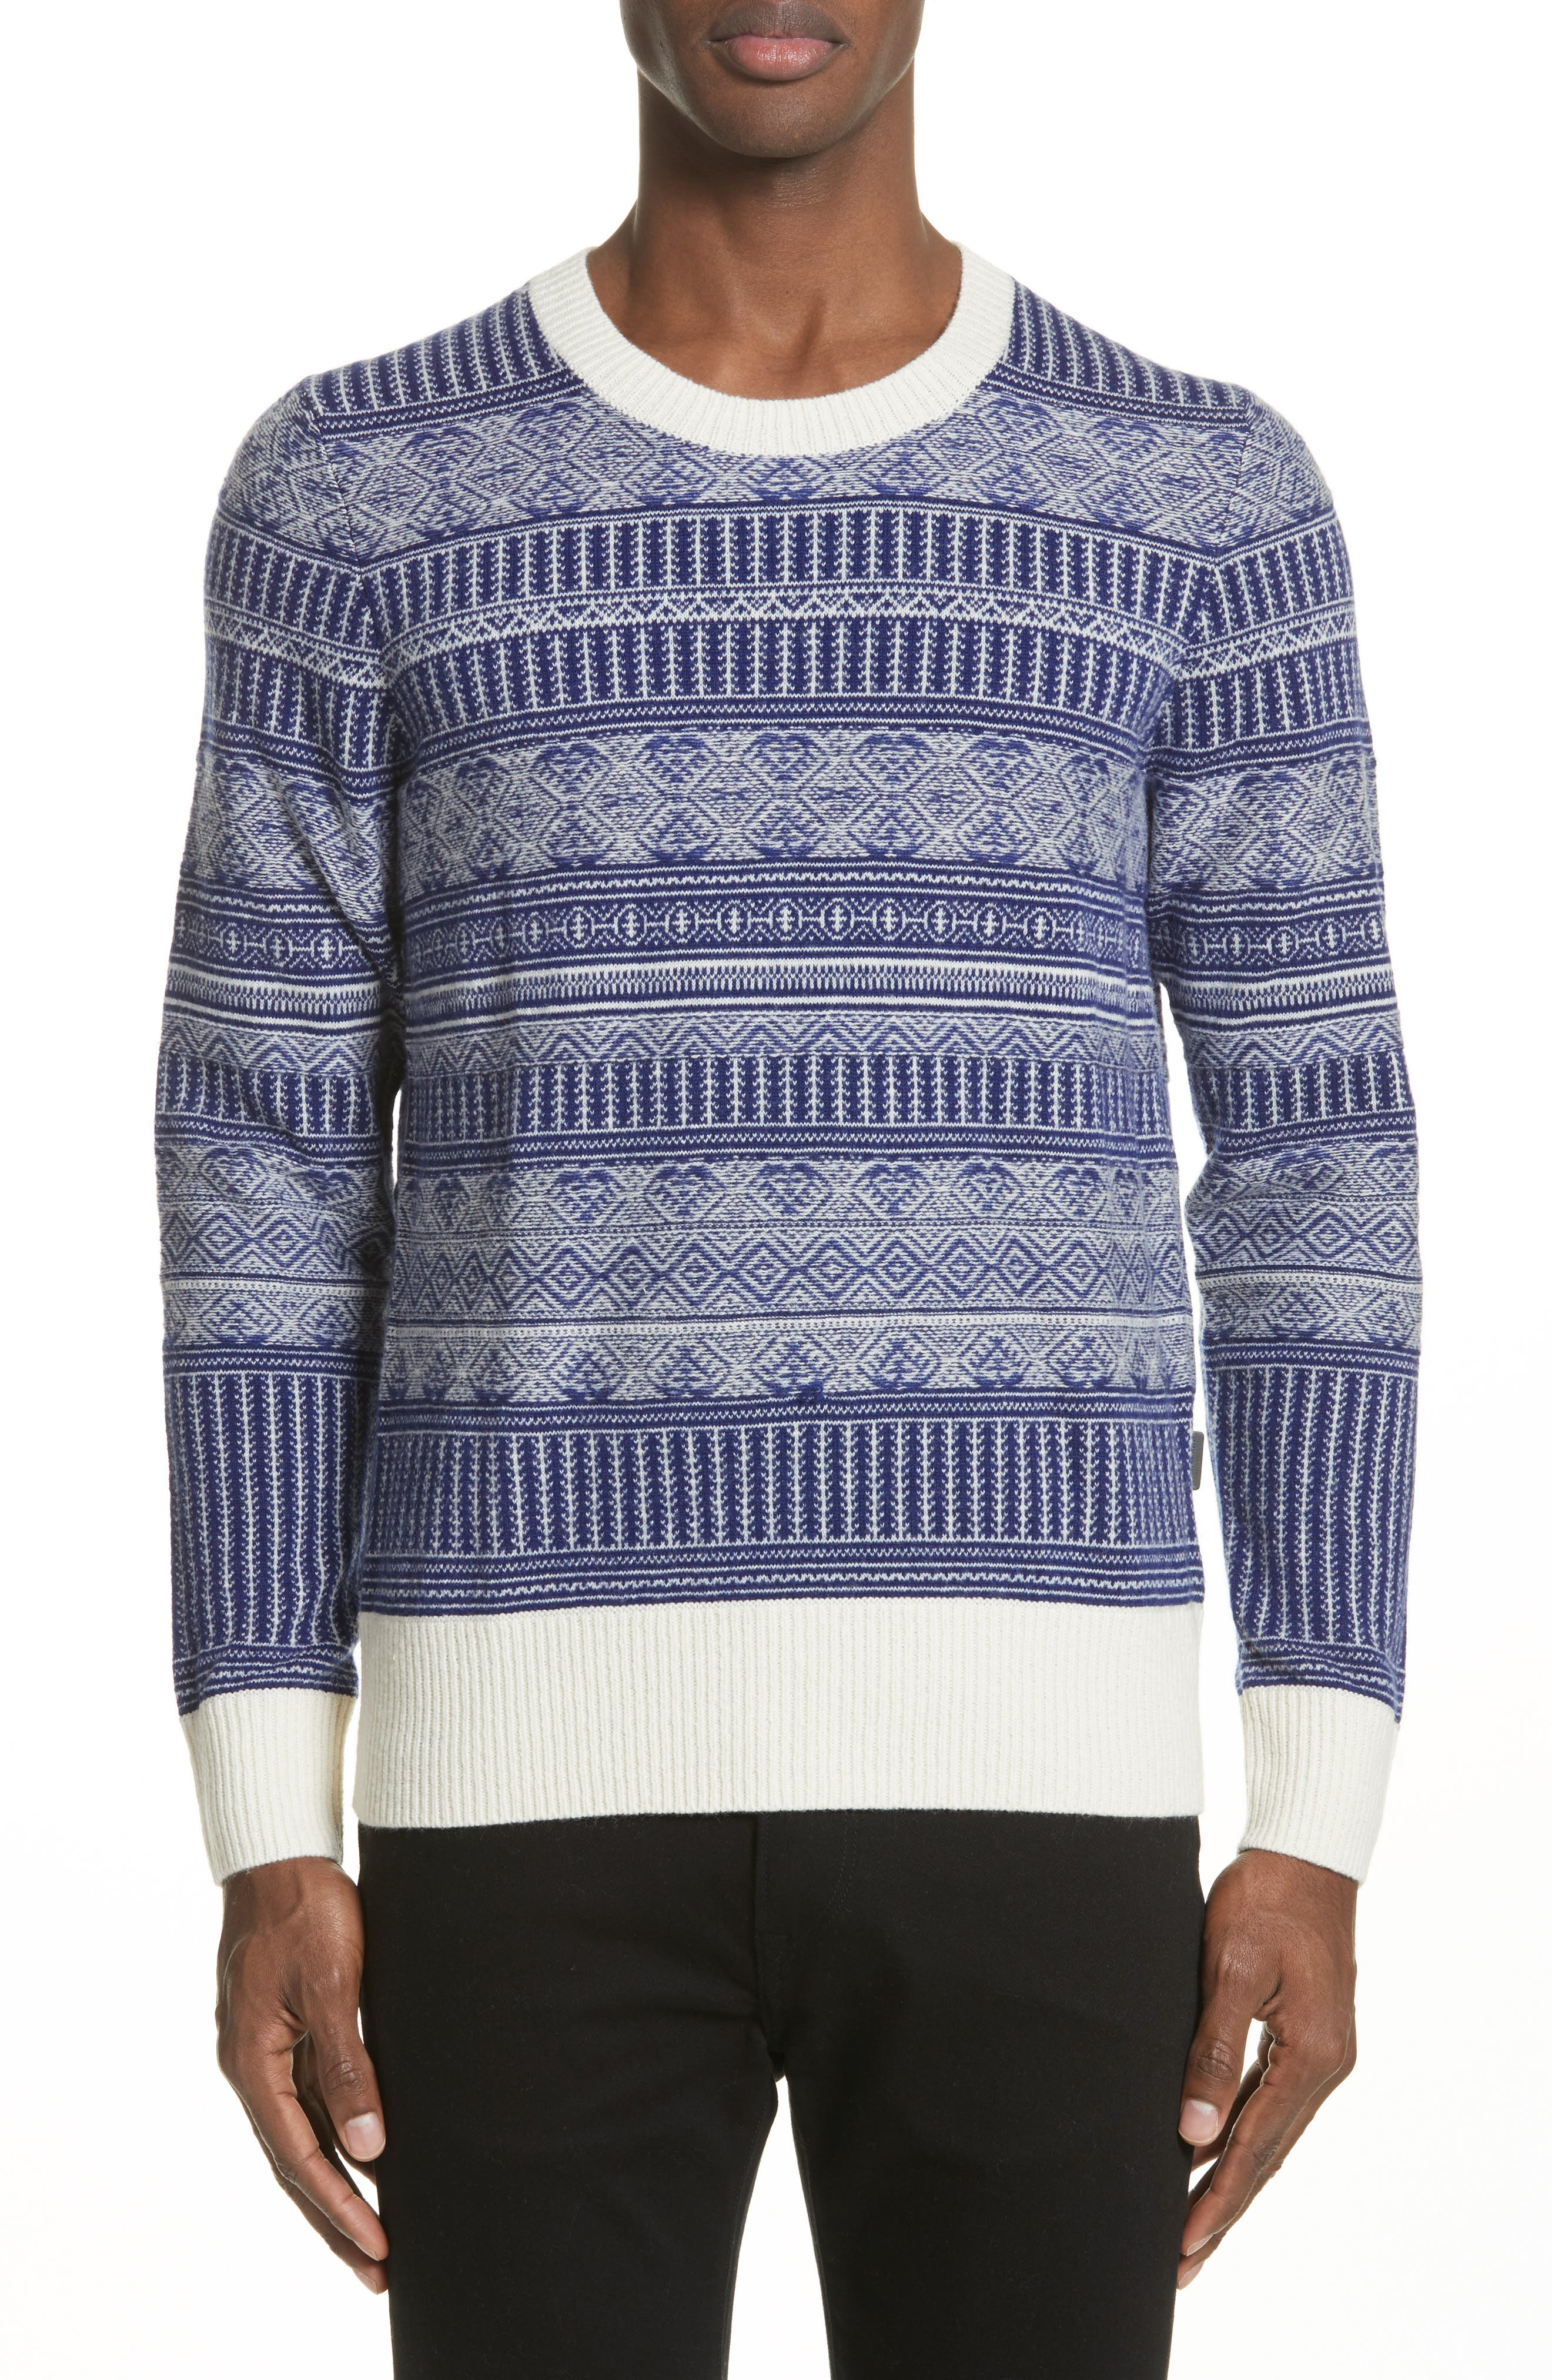 Tredway Wool & Cashmere Sweater,                         Main,                         color, Bright Navy